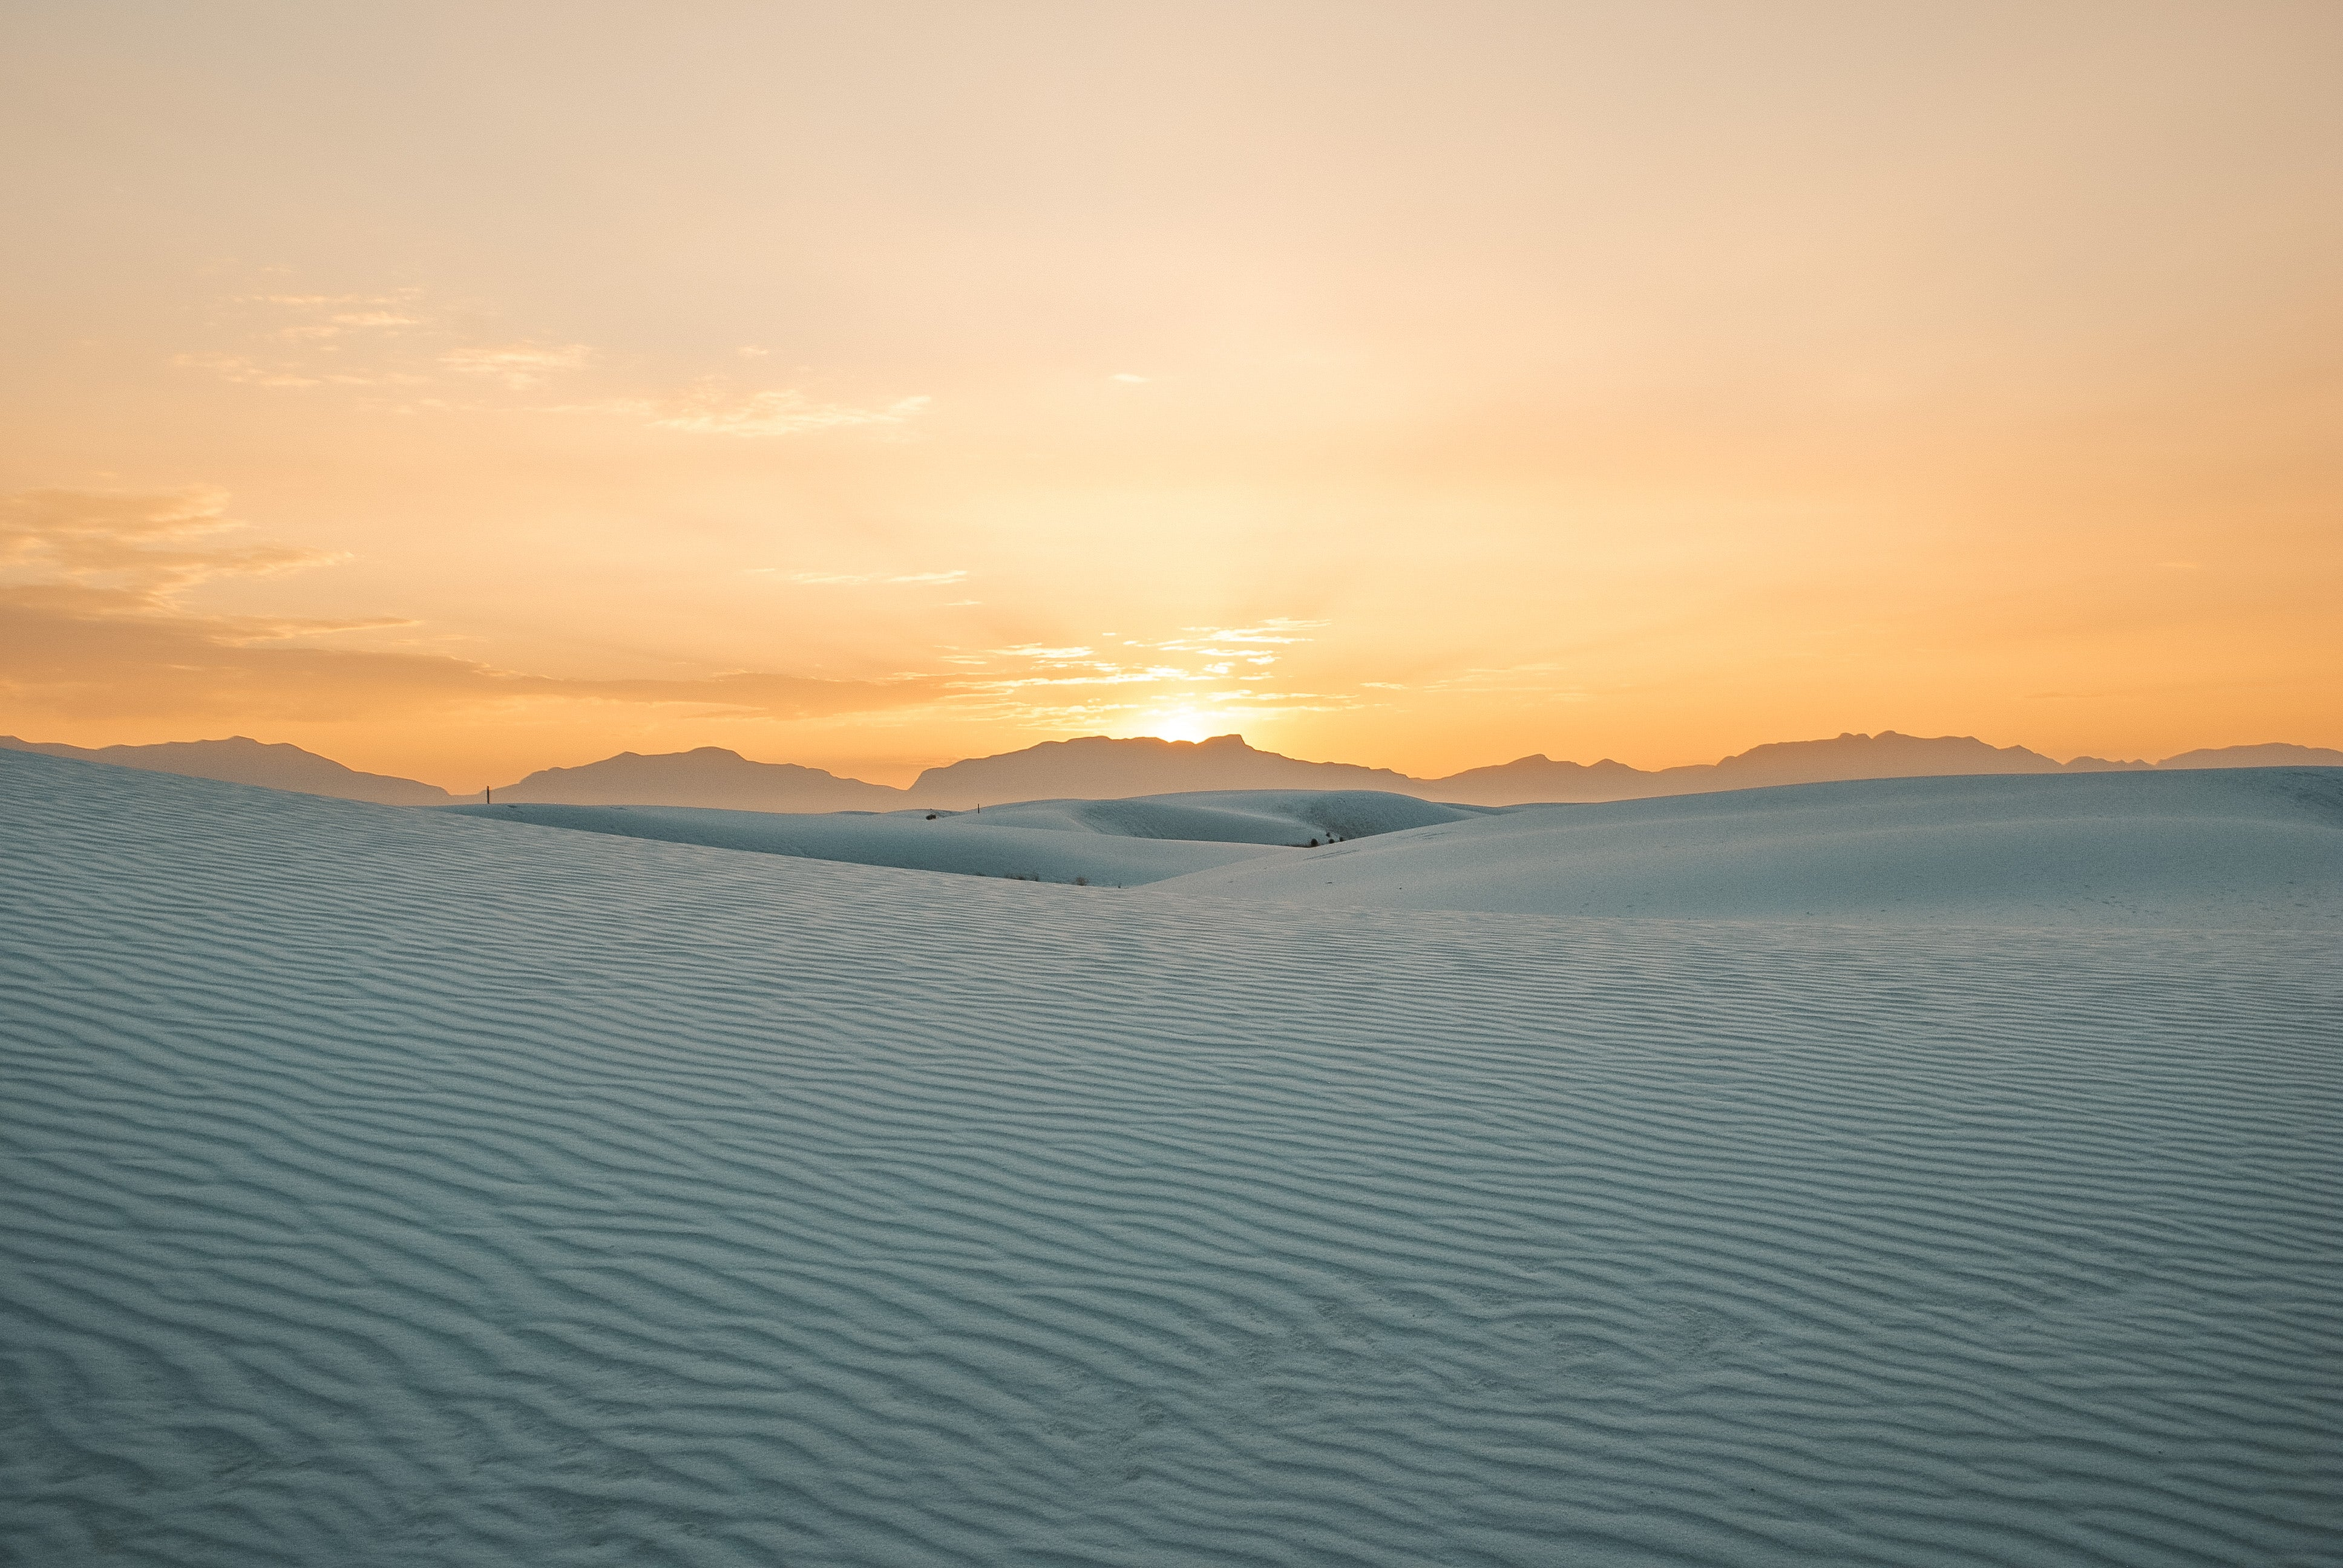 sunset at white sands national park, NM